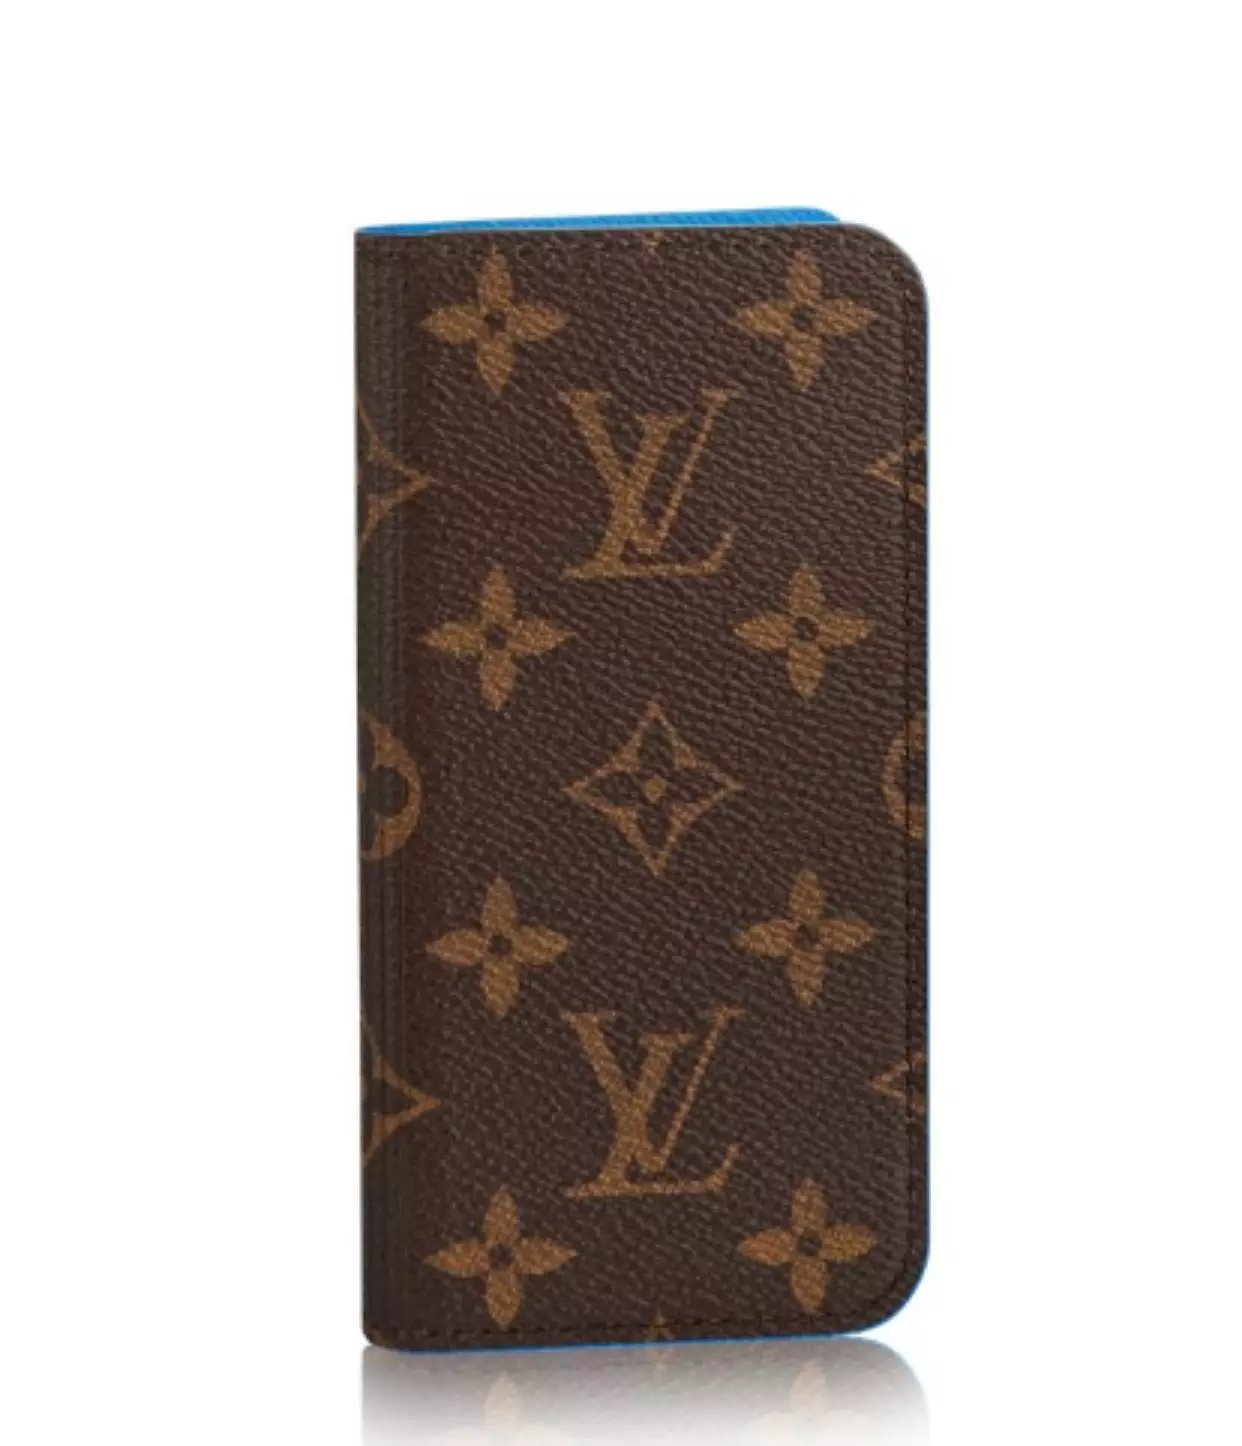 good cases for iphone 8 Plus create your own iphone 8 Plus case Louis Vuitton iphone 8 Plus case cases iphone custom case phone iphone five covers sell iphone cases apple iPhone 8 Plus covers shop iphone 8 Plus cases